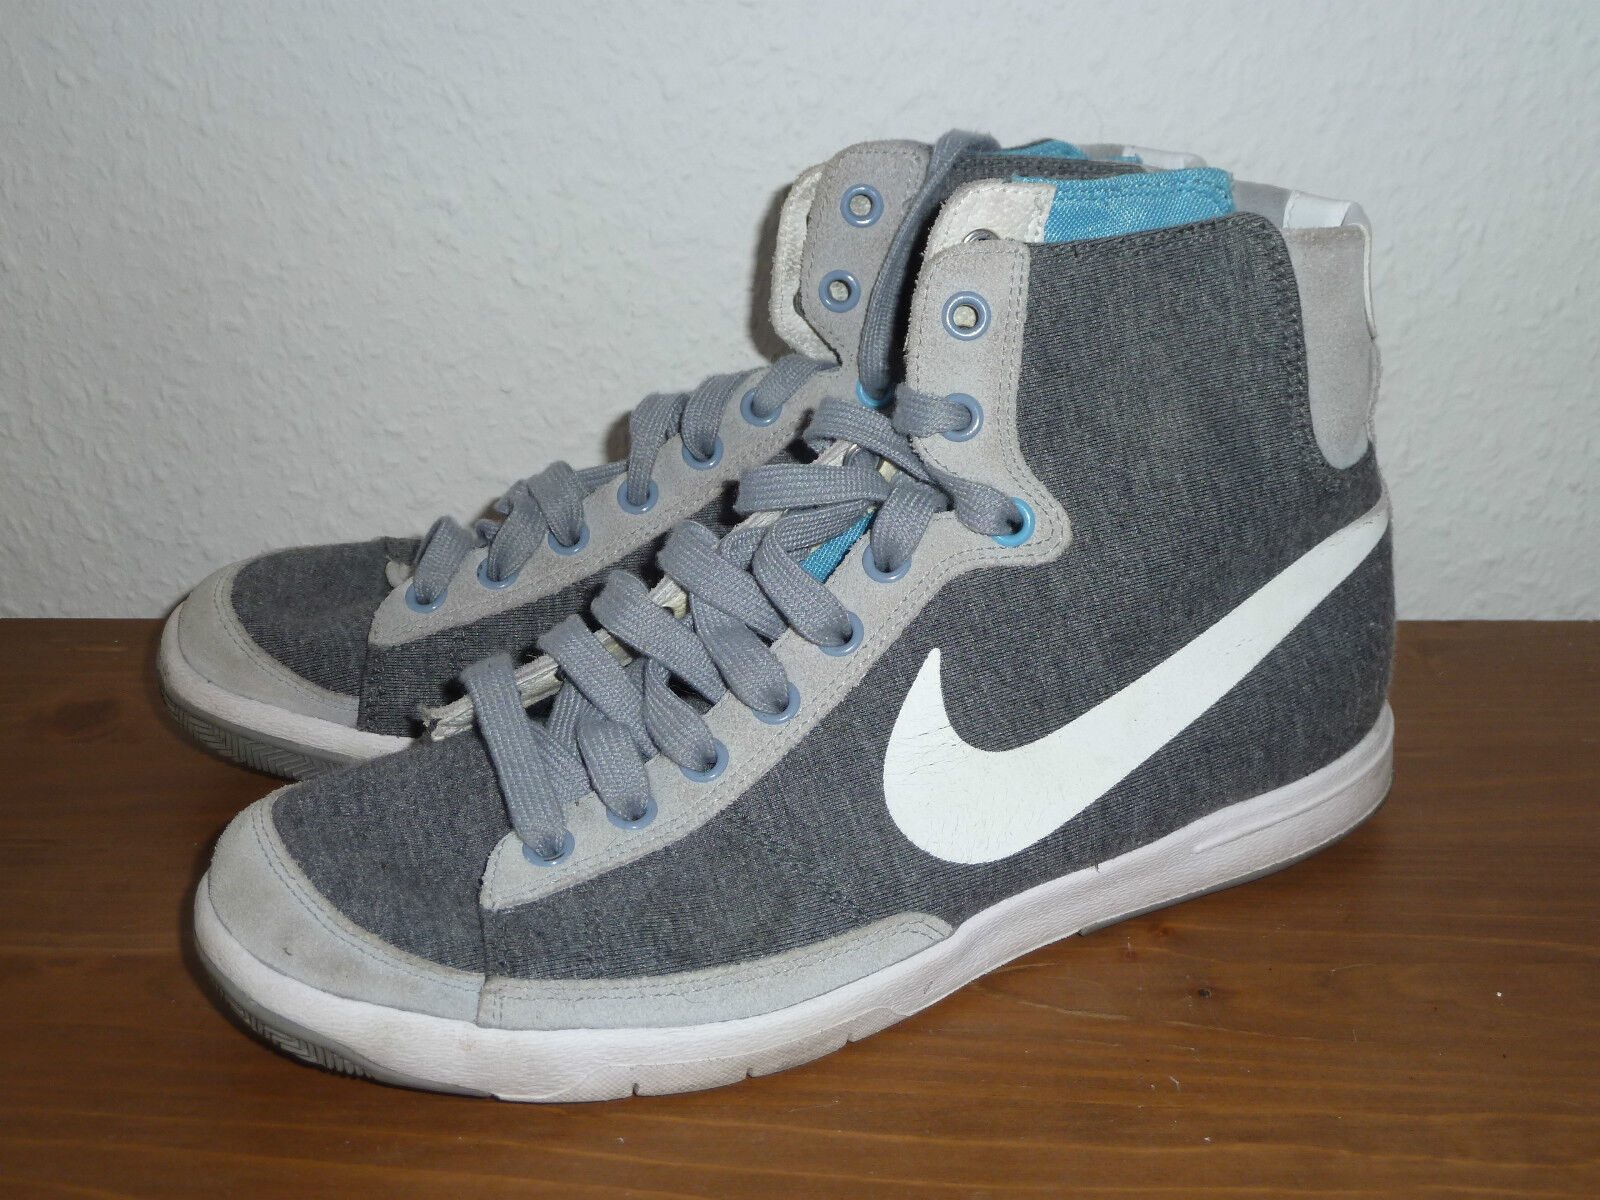 High Top SNEAKER Chucks - grau - Textil - * NIKE * - Gr. 40 The most popular shoes for men and women